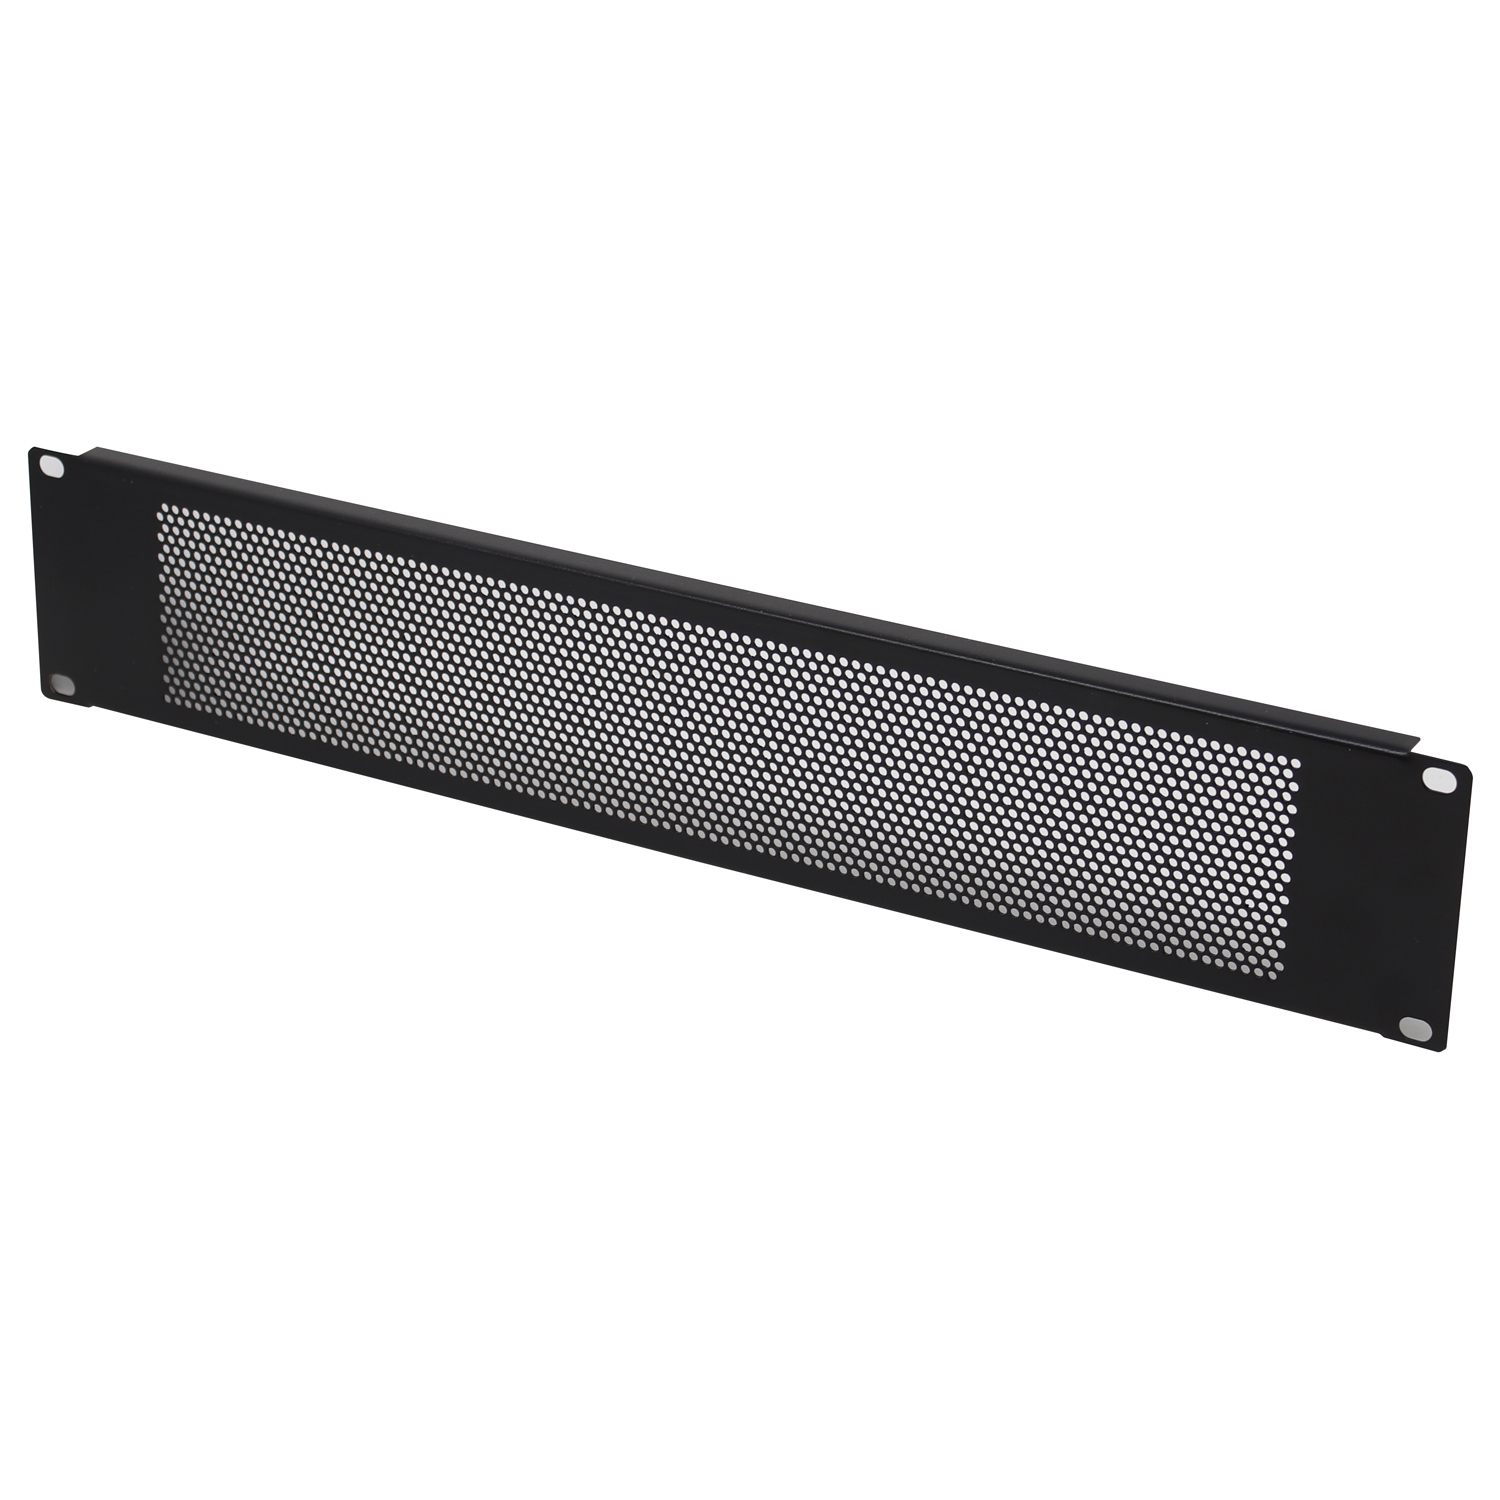 2U Flat Perforated Panel